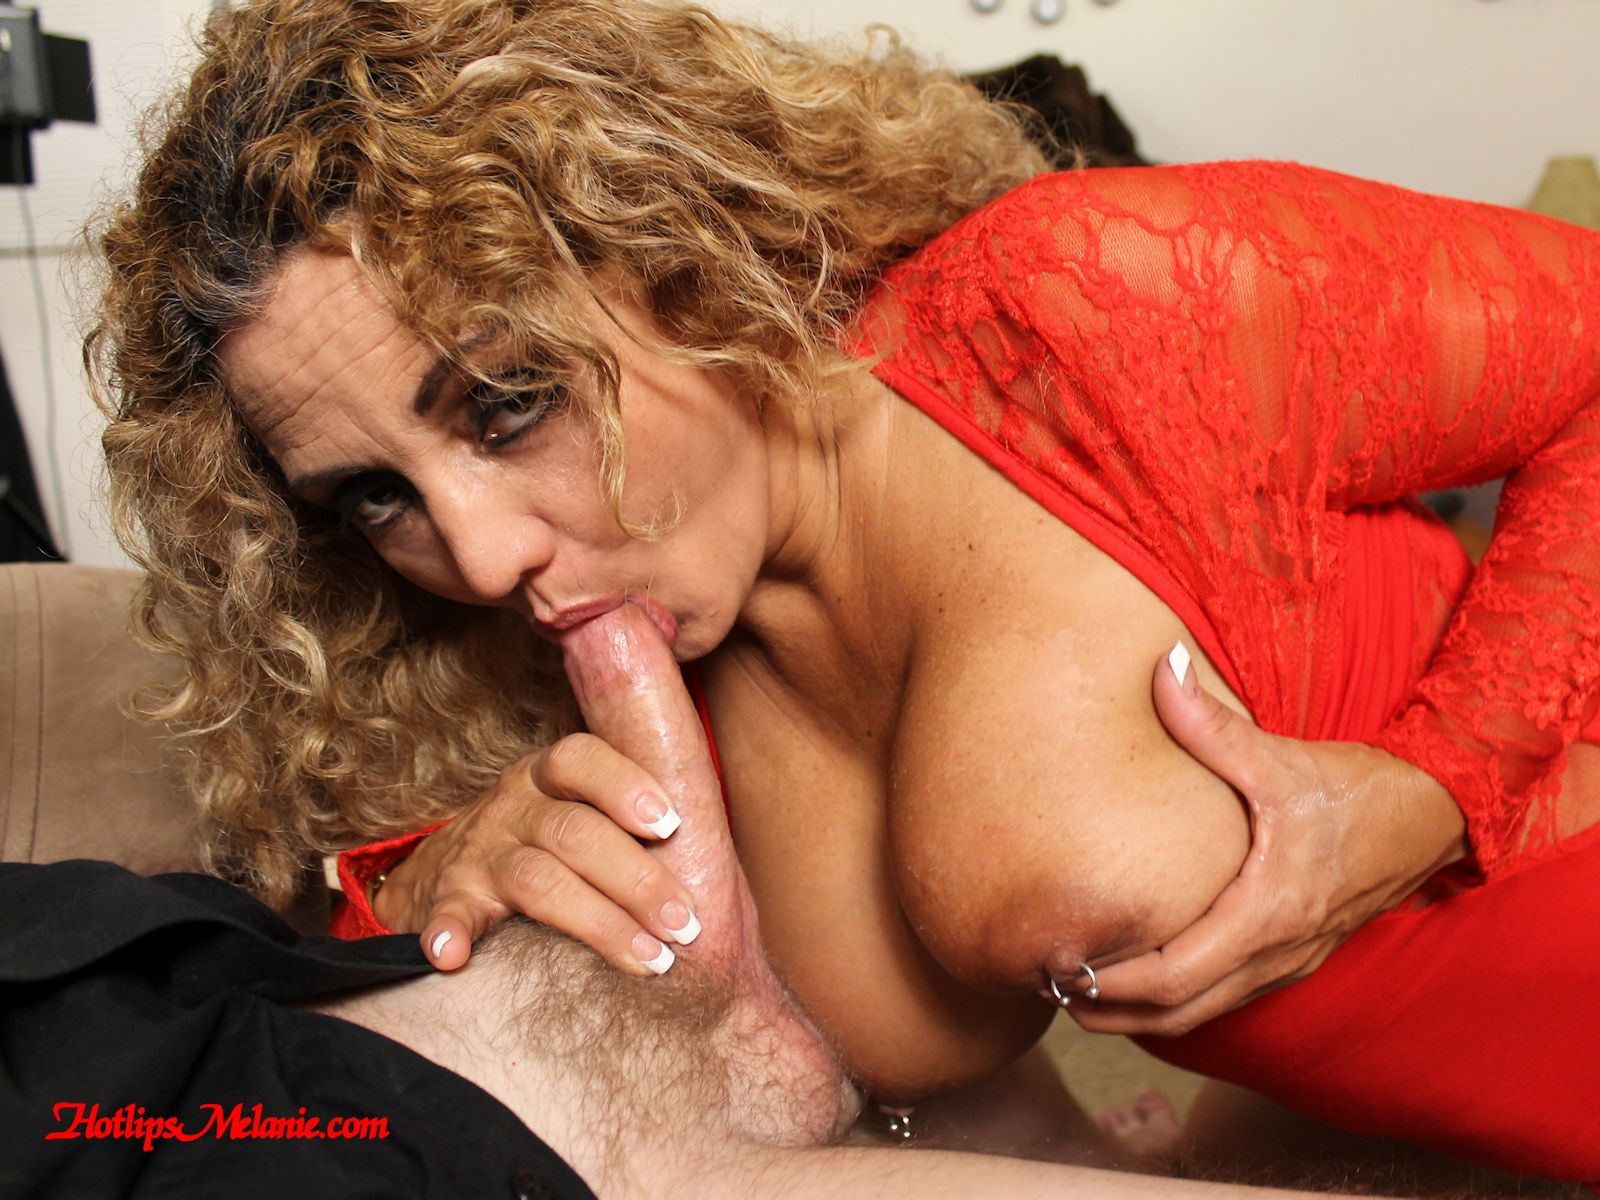 latina cougar cum - Dirty milf hookers Steel swinging balls Husband watches wife fuck her daddy  ...